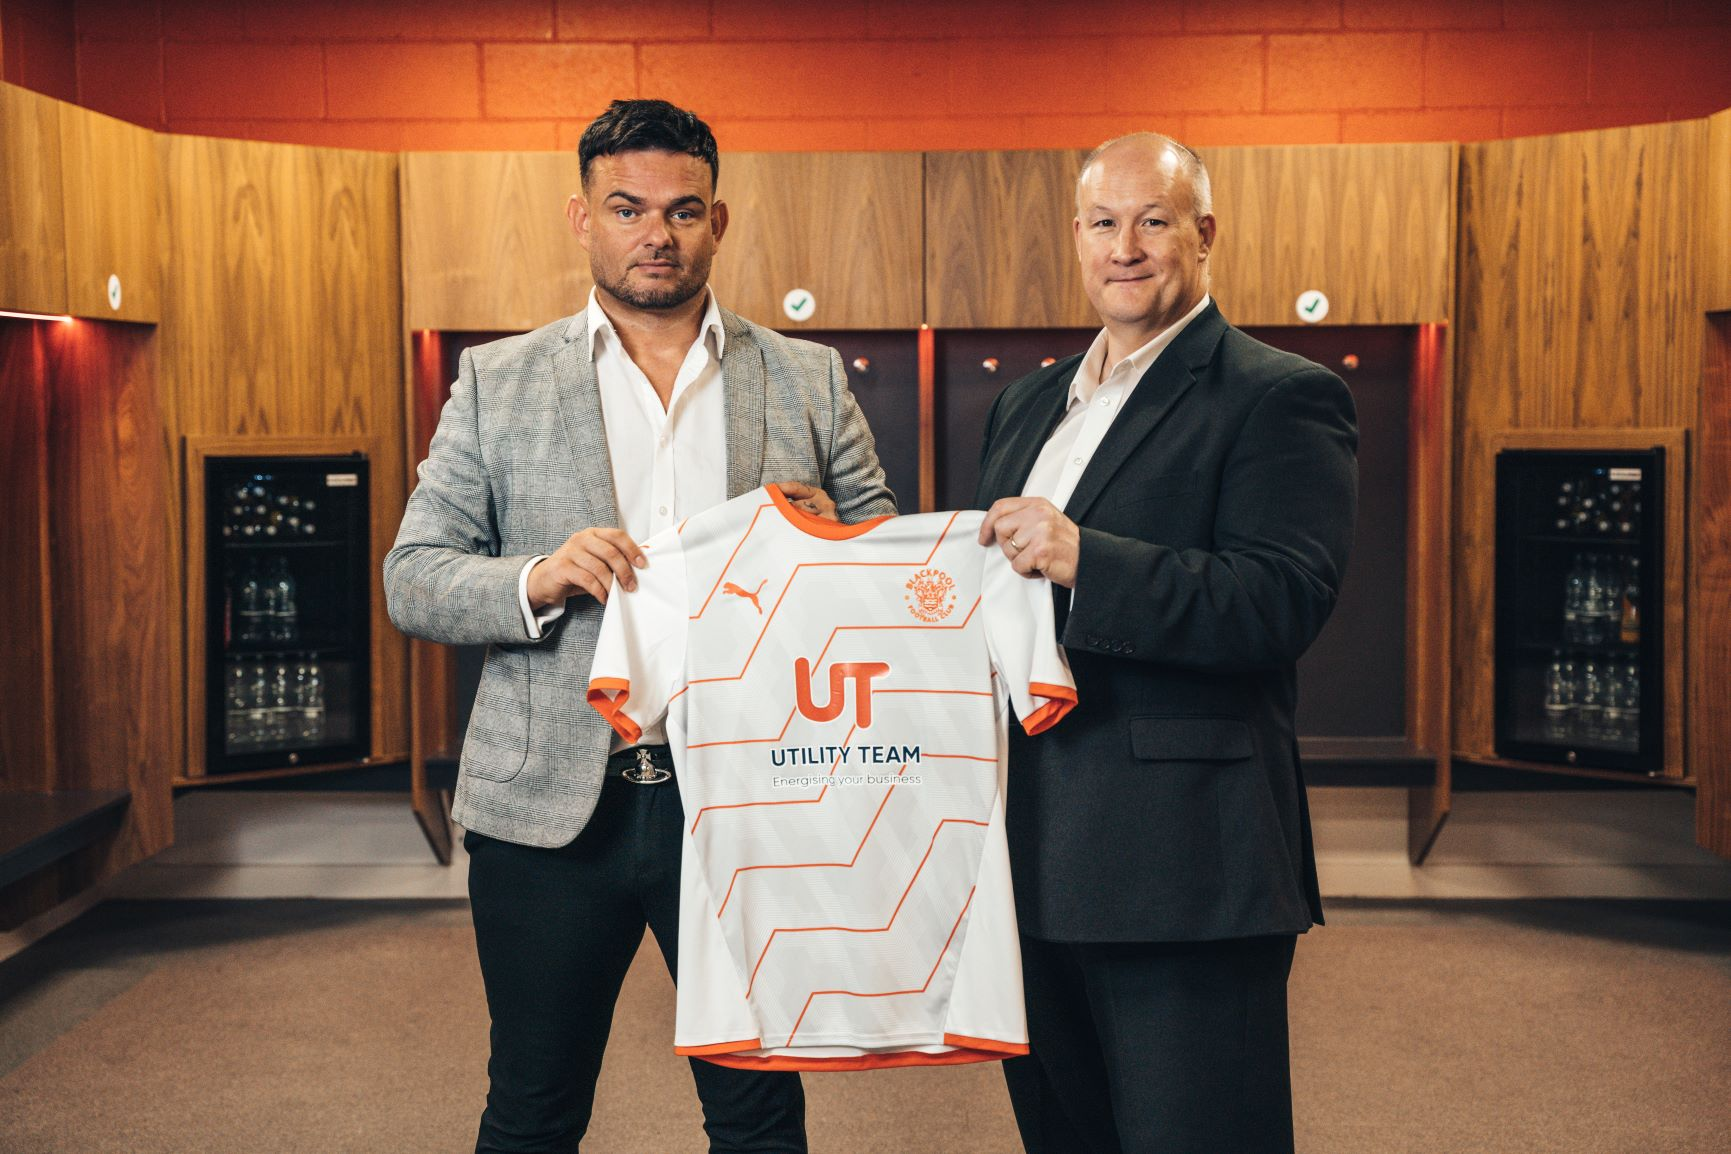 Utility Team are delighted to announce that we will continue as Blackpool FC away shirt sponsor for the 2021/22 Sky Bet Championship season.